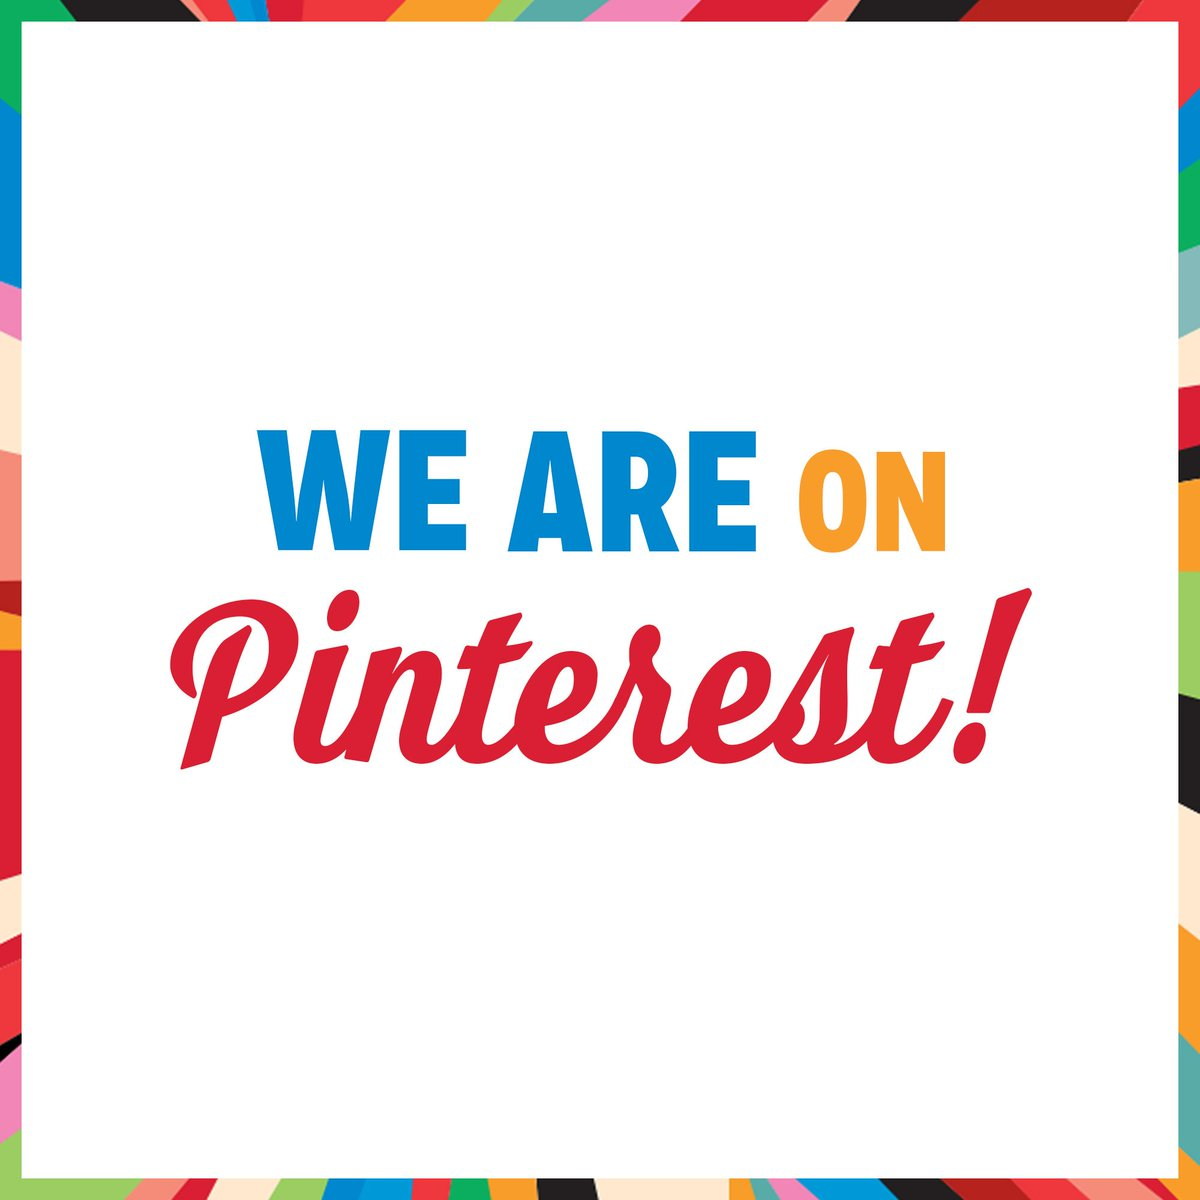 Have you heard the news? We are on Pinterest now! Follow us here: https://t.co/AcuuGKLDpS https://t.co/ePEVIEOHgY